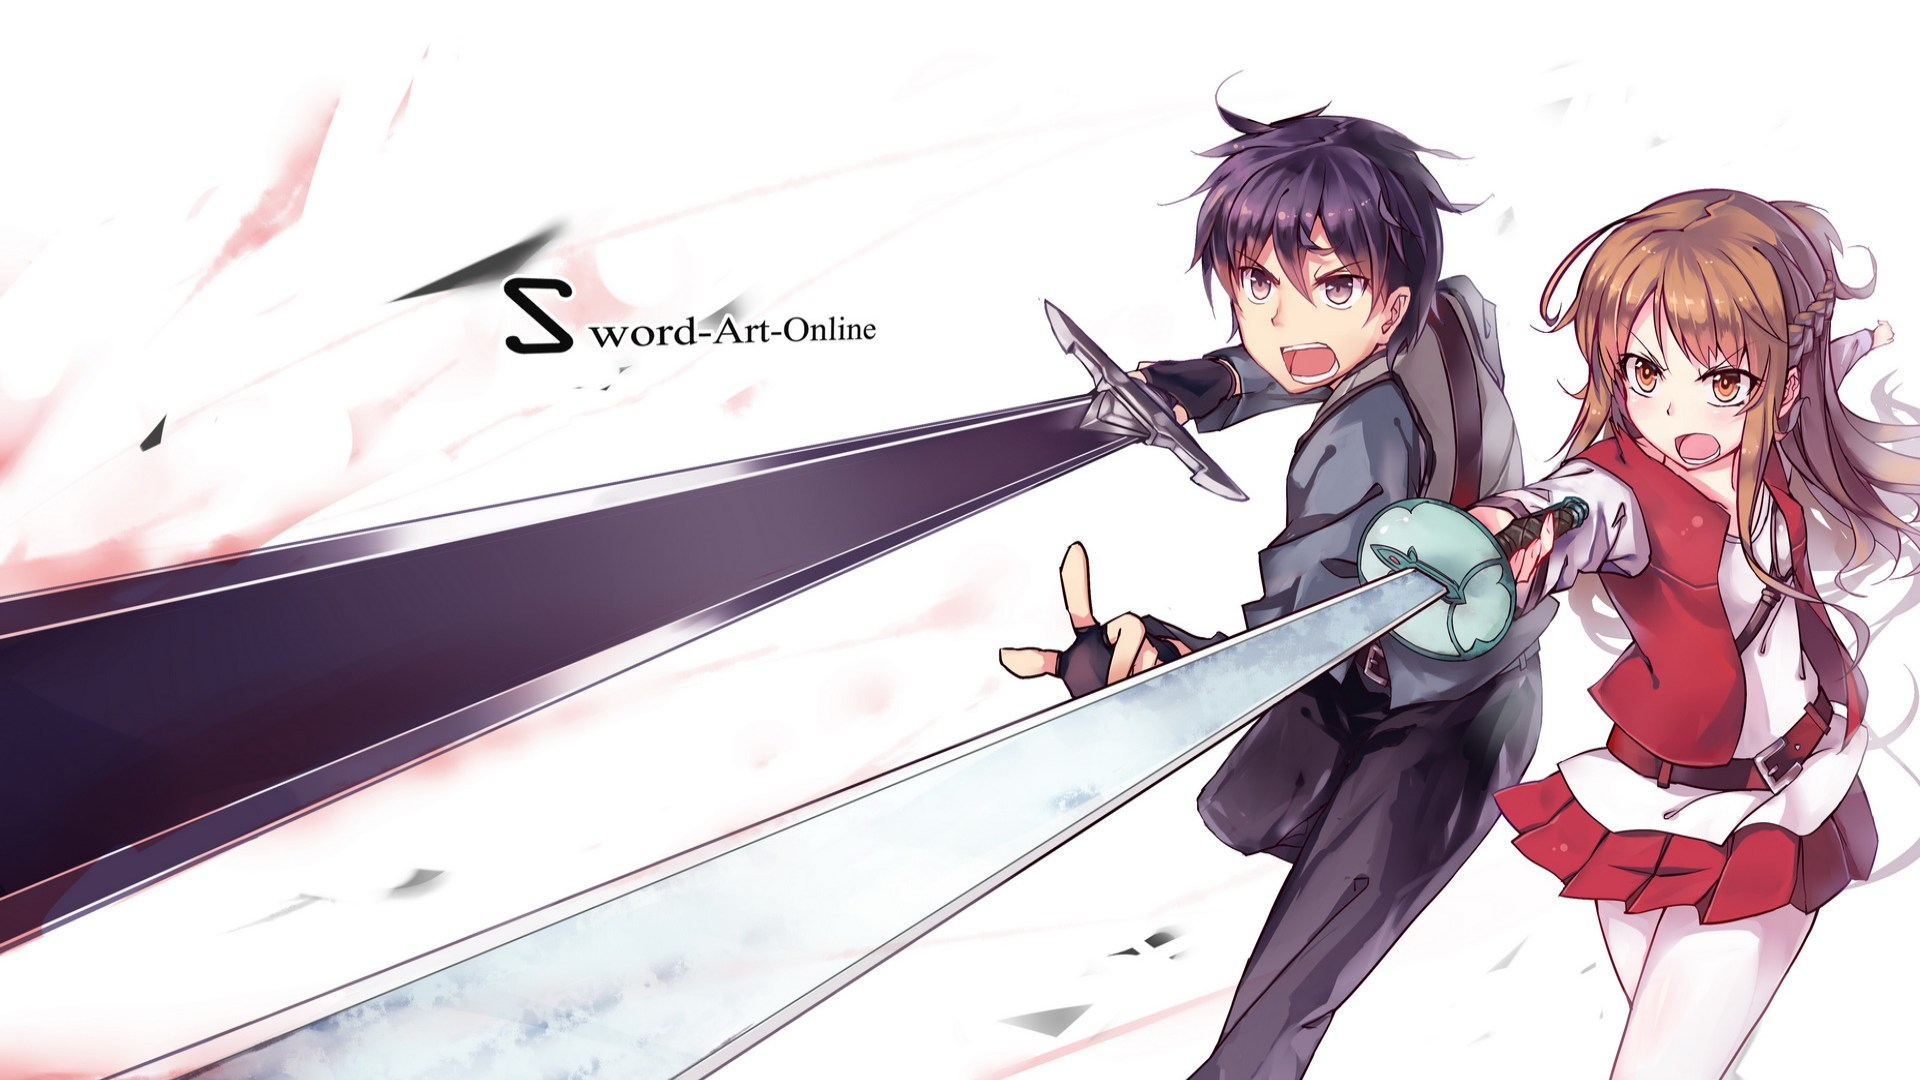 Wonderful Wallpaper Movie Sword Art Online - sword-art-online-wallpaper-18  Best Photo Reference_873021.jpg